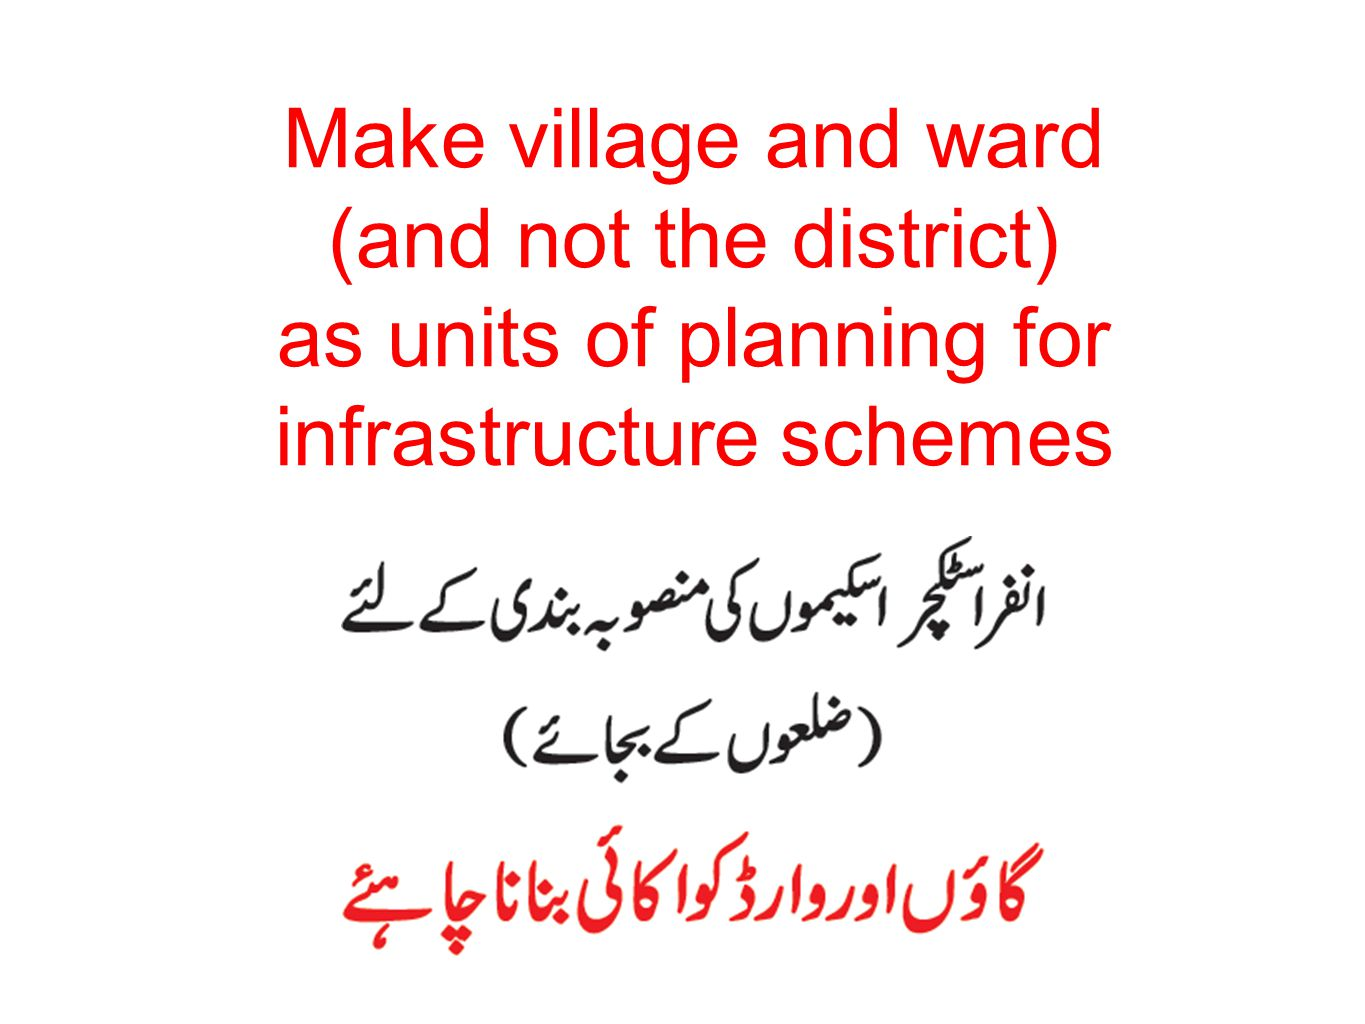 Make village and ward (and not the district) as units of planning for infrastructure schemes